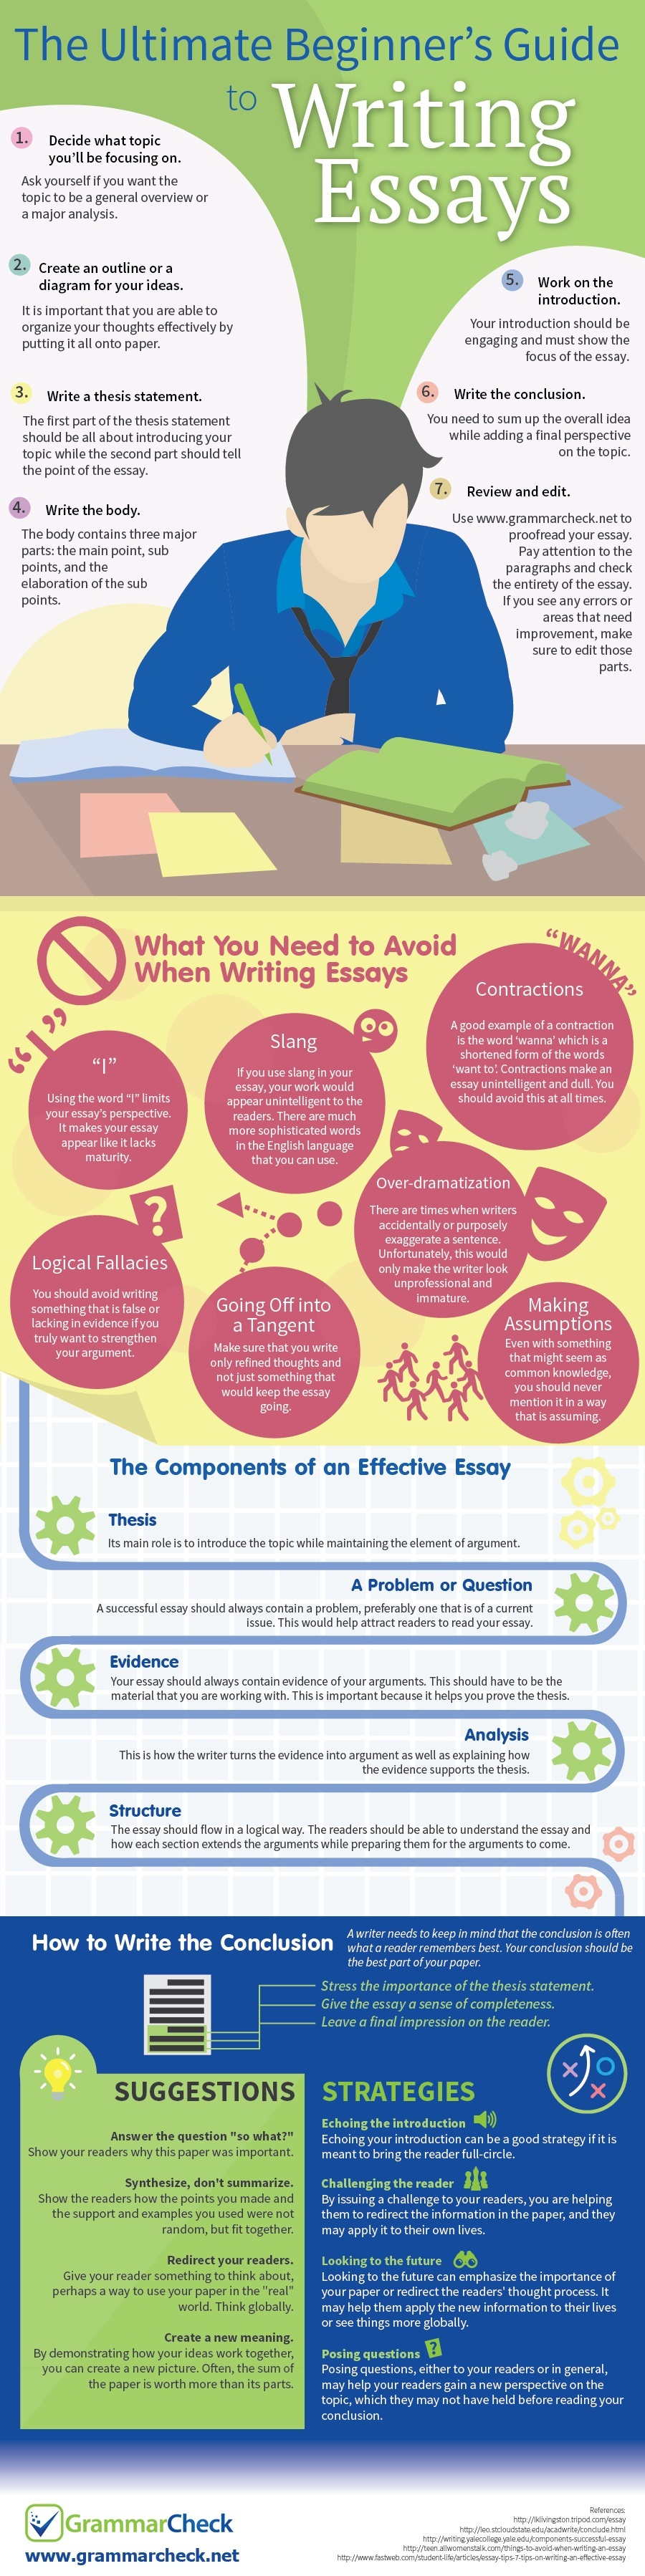 the ultimate beginners guide to writing essays infographic  essay on modern science also essays in english how to write a thesis essay